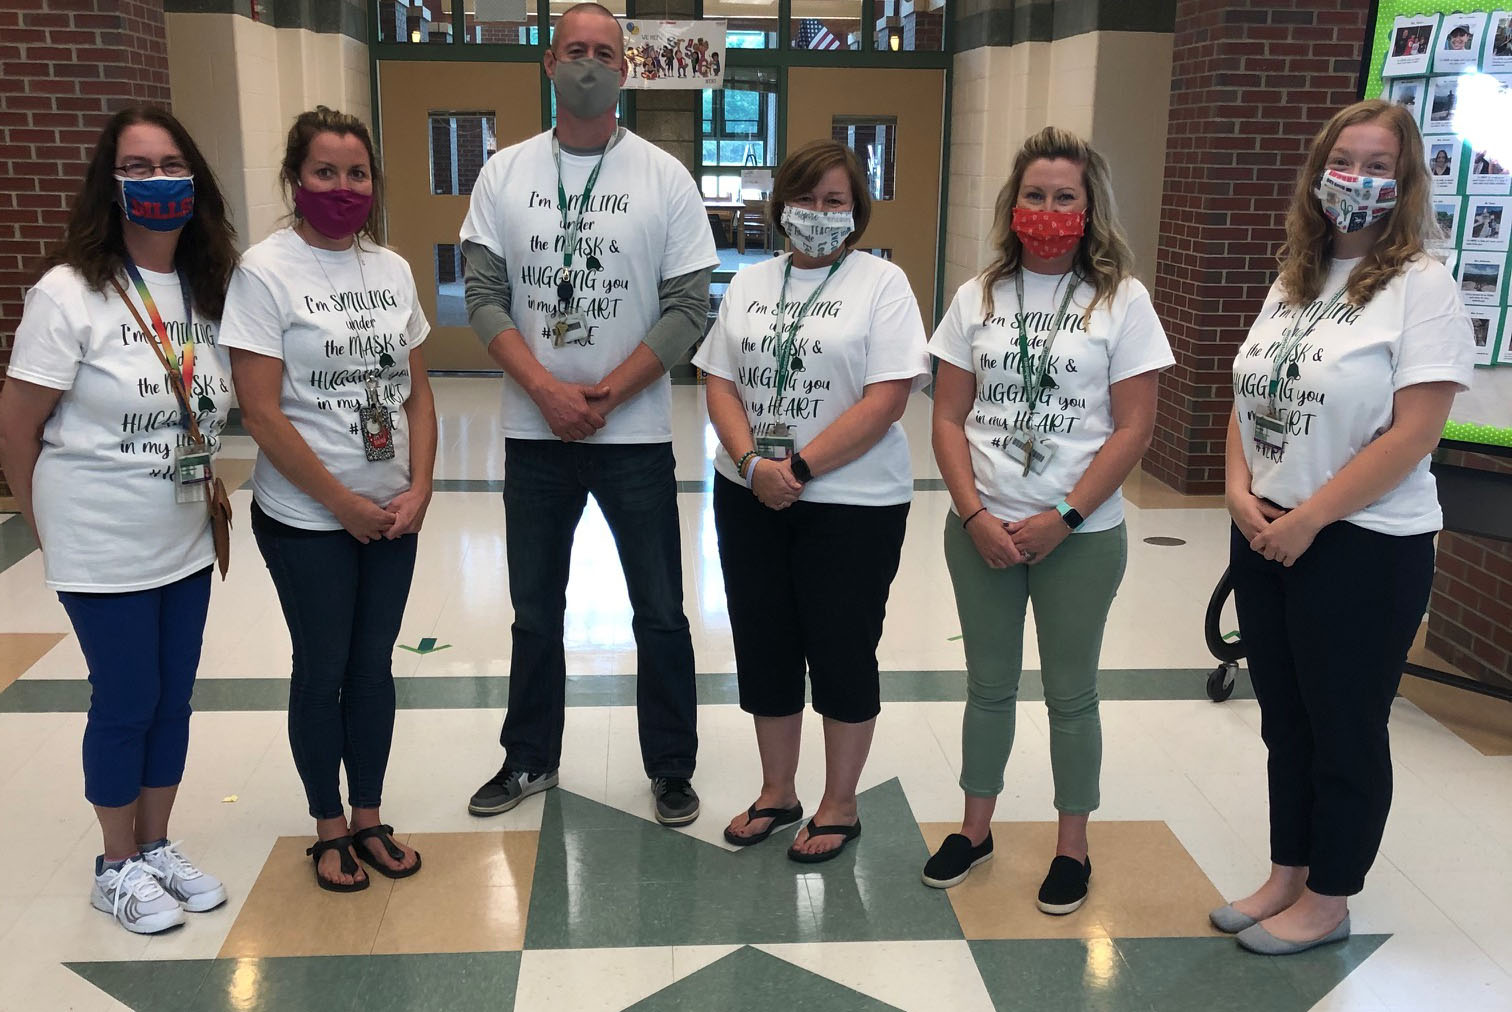 Shatekon teachers wearing tshirts that say they are smiling under the mask